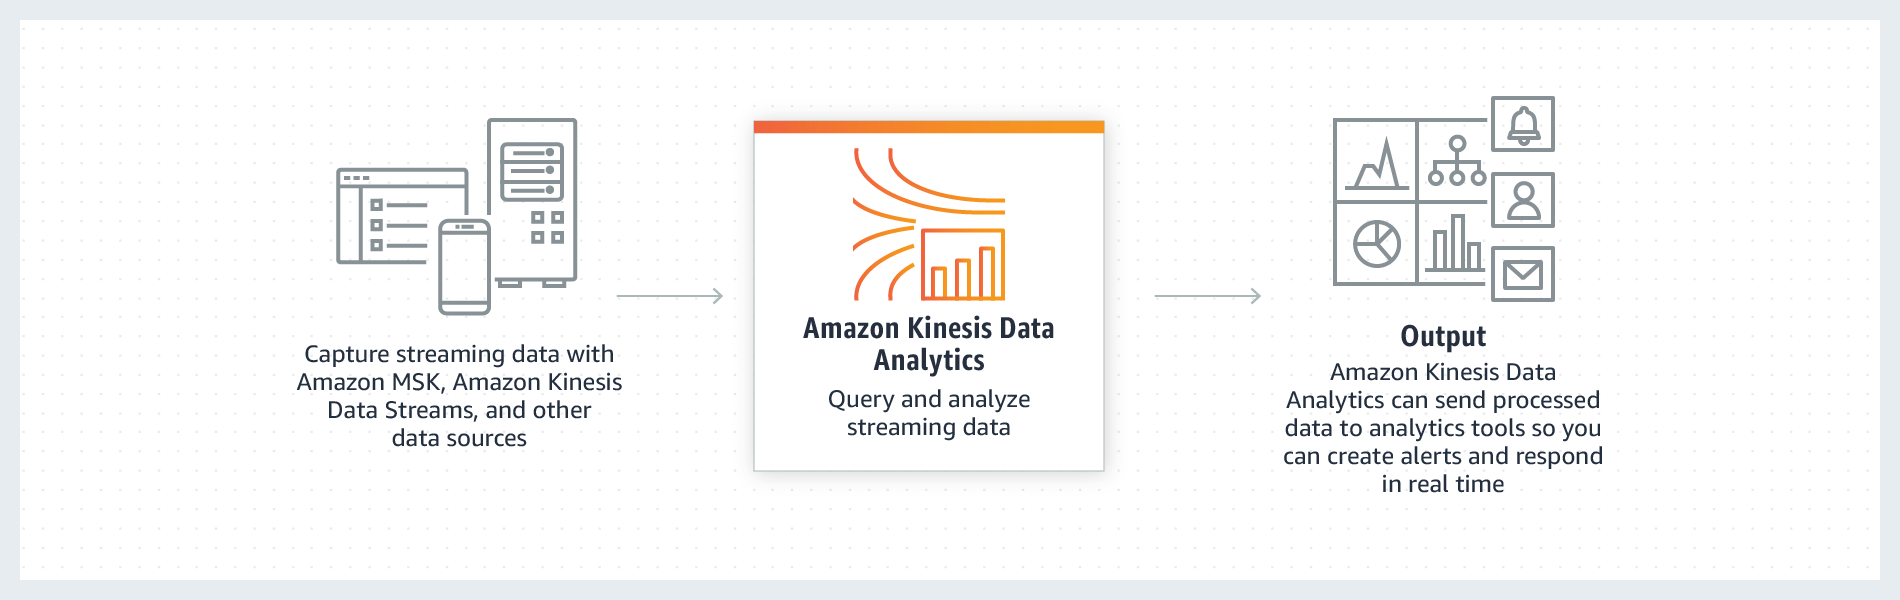 Cómo funciona Amazon Kinesis Data Analytics